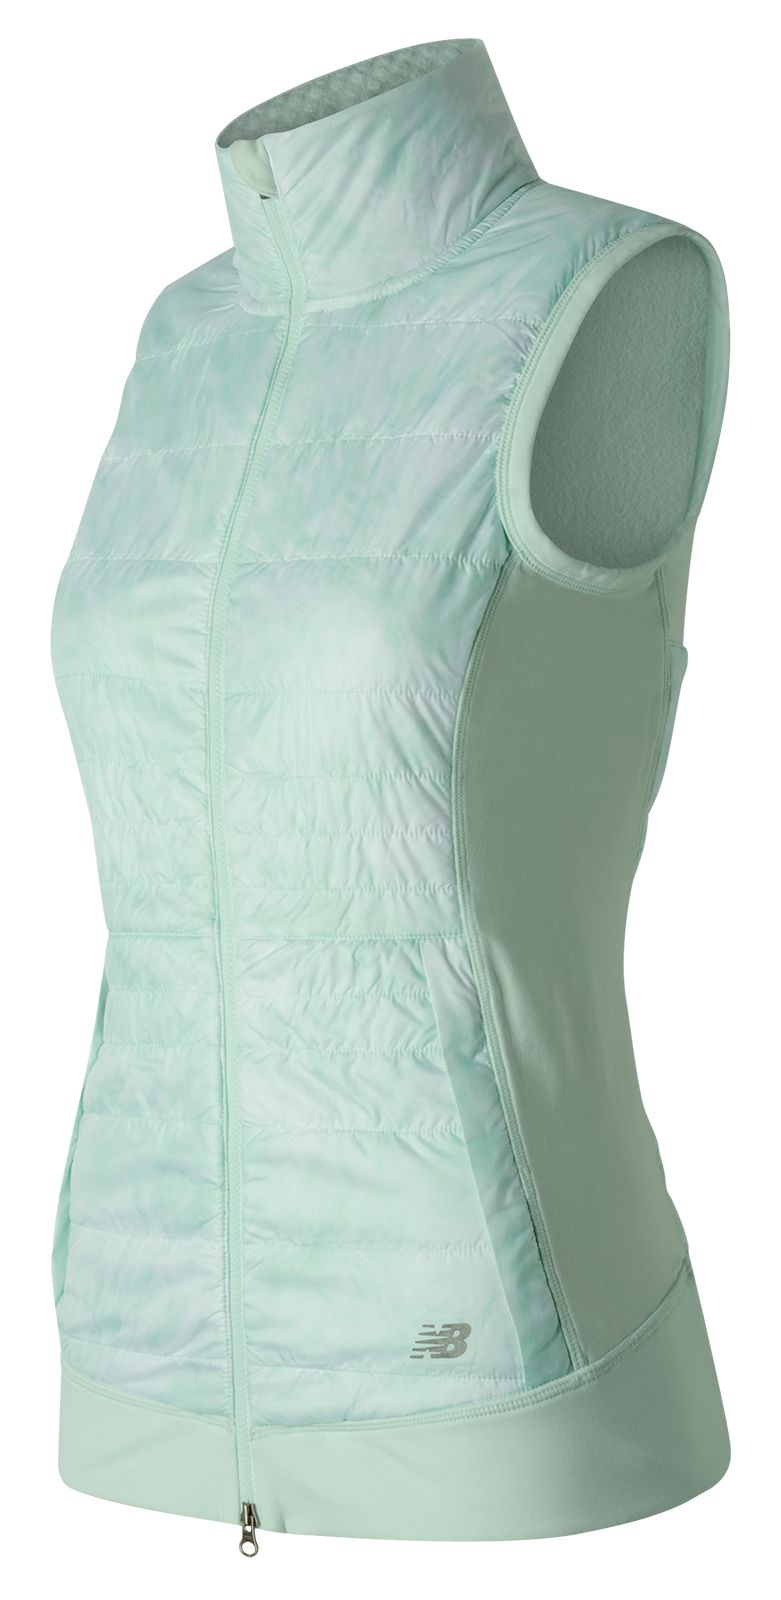 New Balance : NB Heat Hybrid Vest : Women's Apparel : WV63121DFP